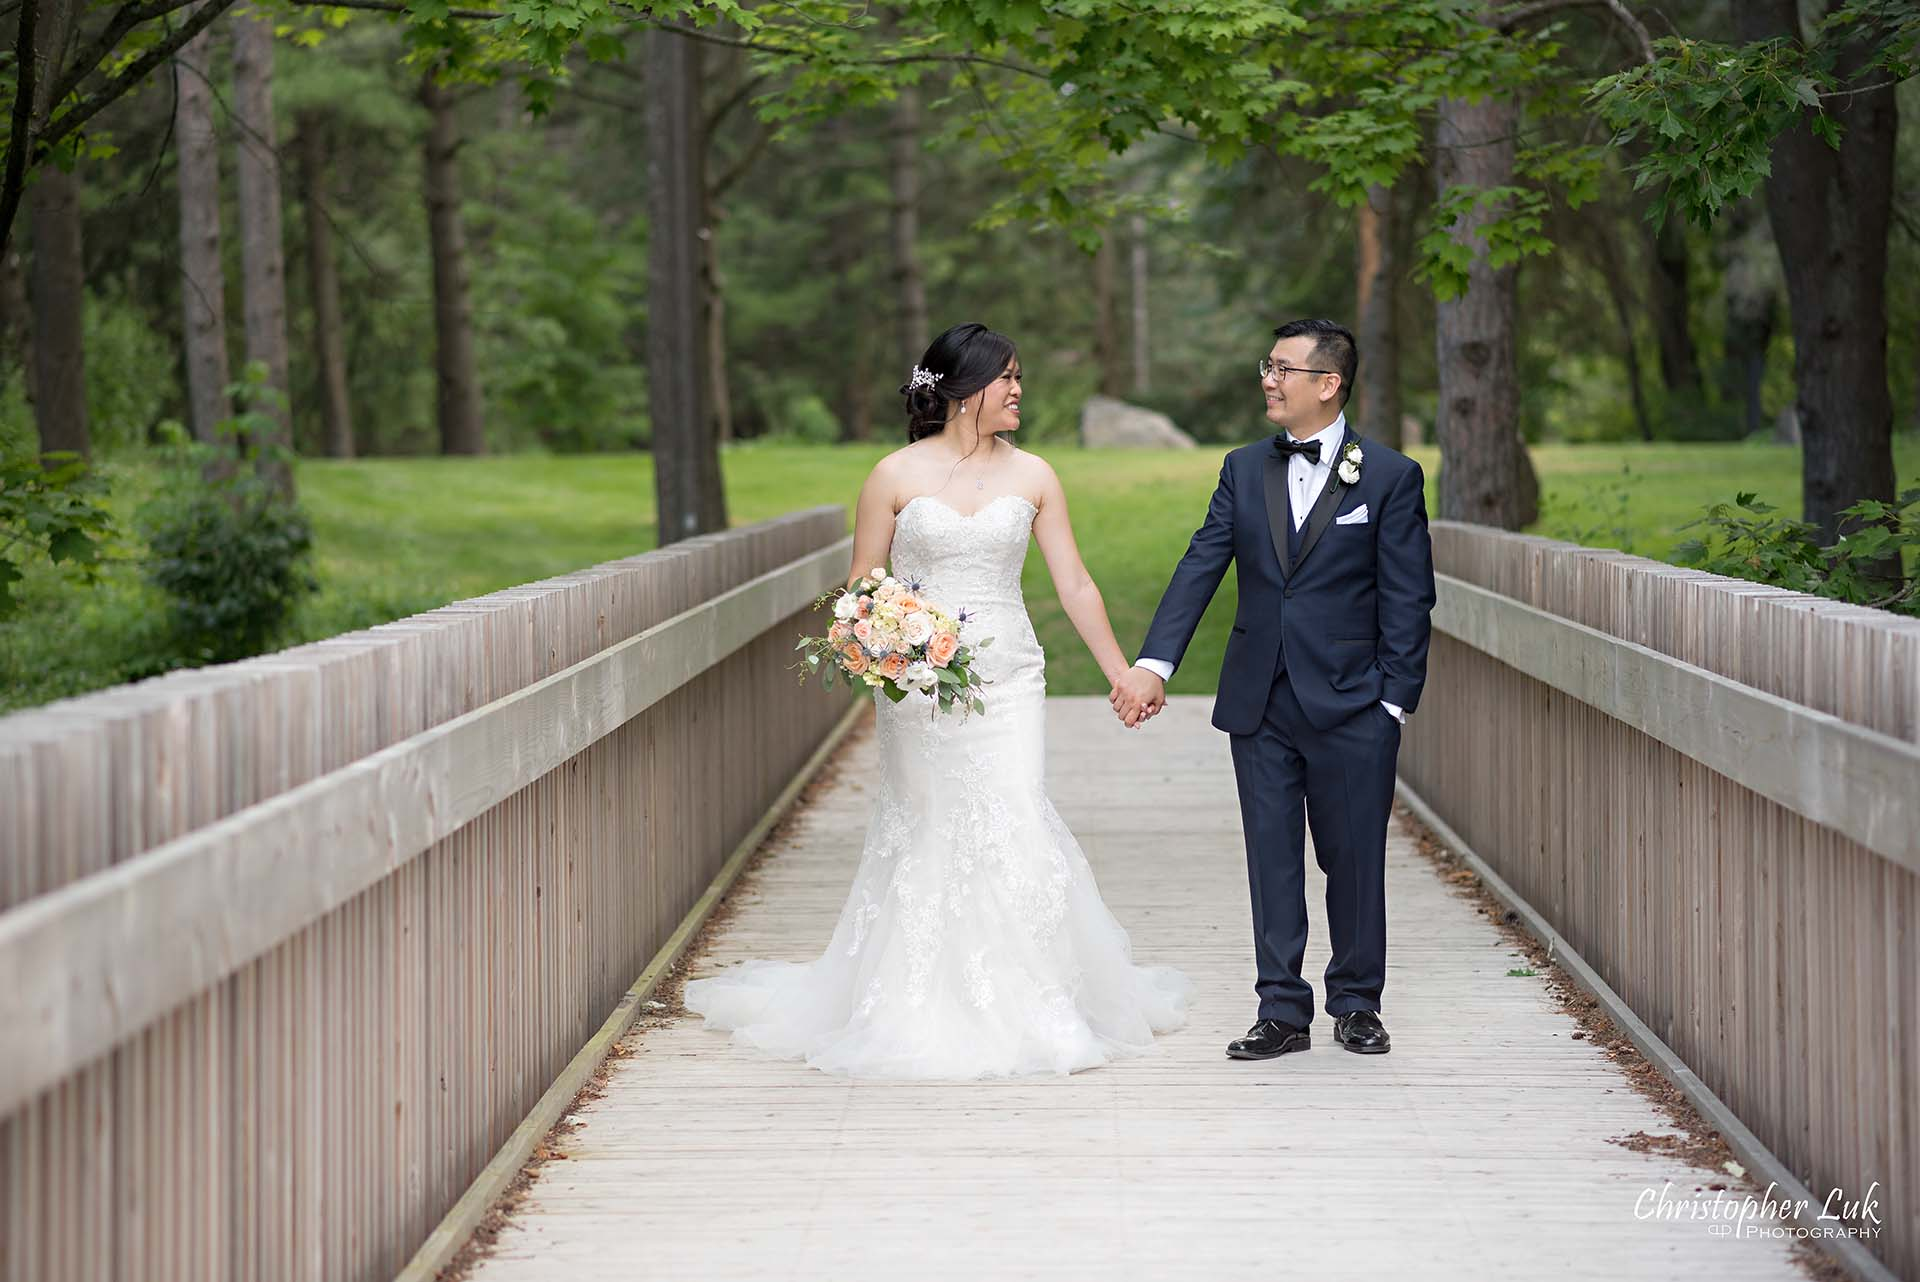 Christopher Luk Toronto Christian Community Church Kleinburg McMichael Art Gallery Vaughan Wedding Photographer Bride Groom Candid Natural Photojournalistic Wooden Bridge Boardwalk Intimate Leading Lines Looking at Each Other Walking